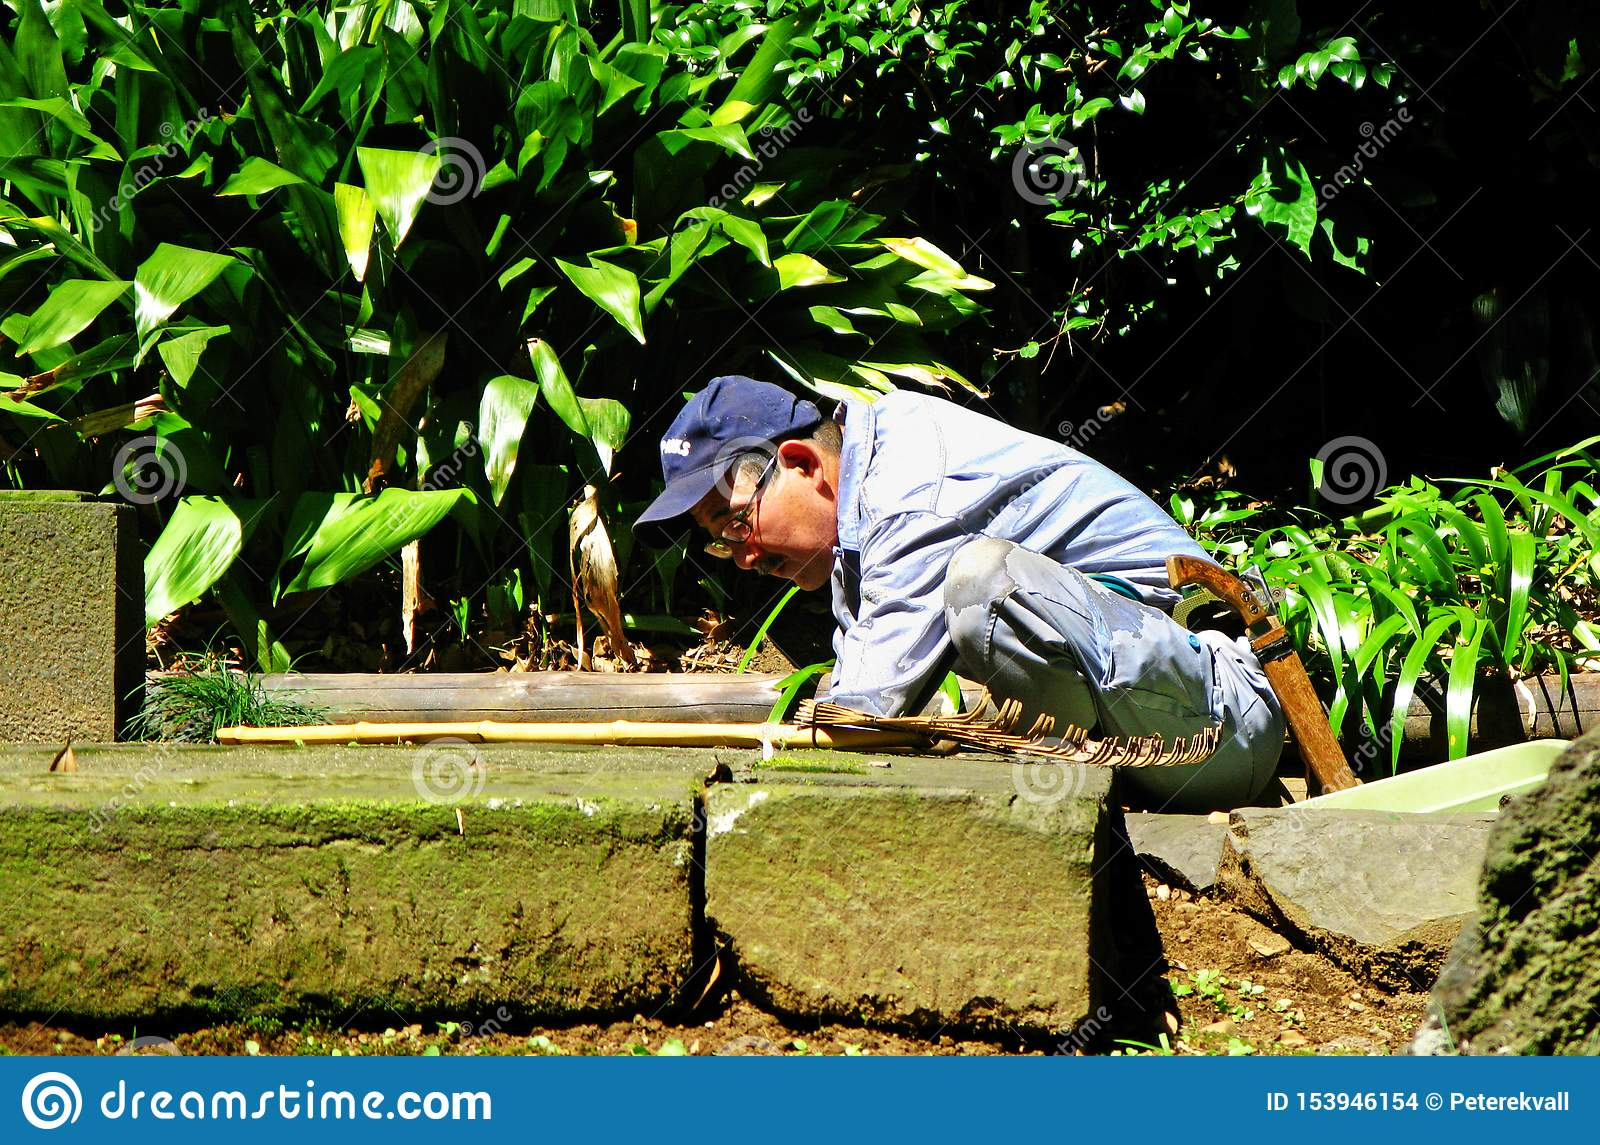 Japanese gardener clears weeds on the ground